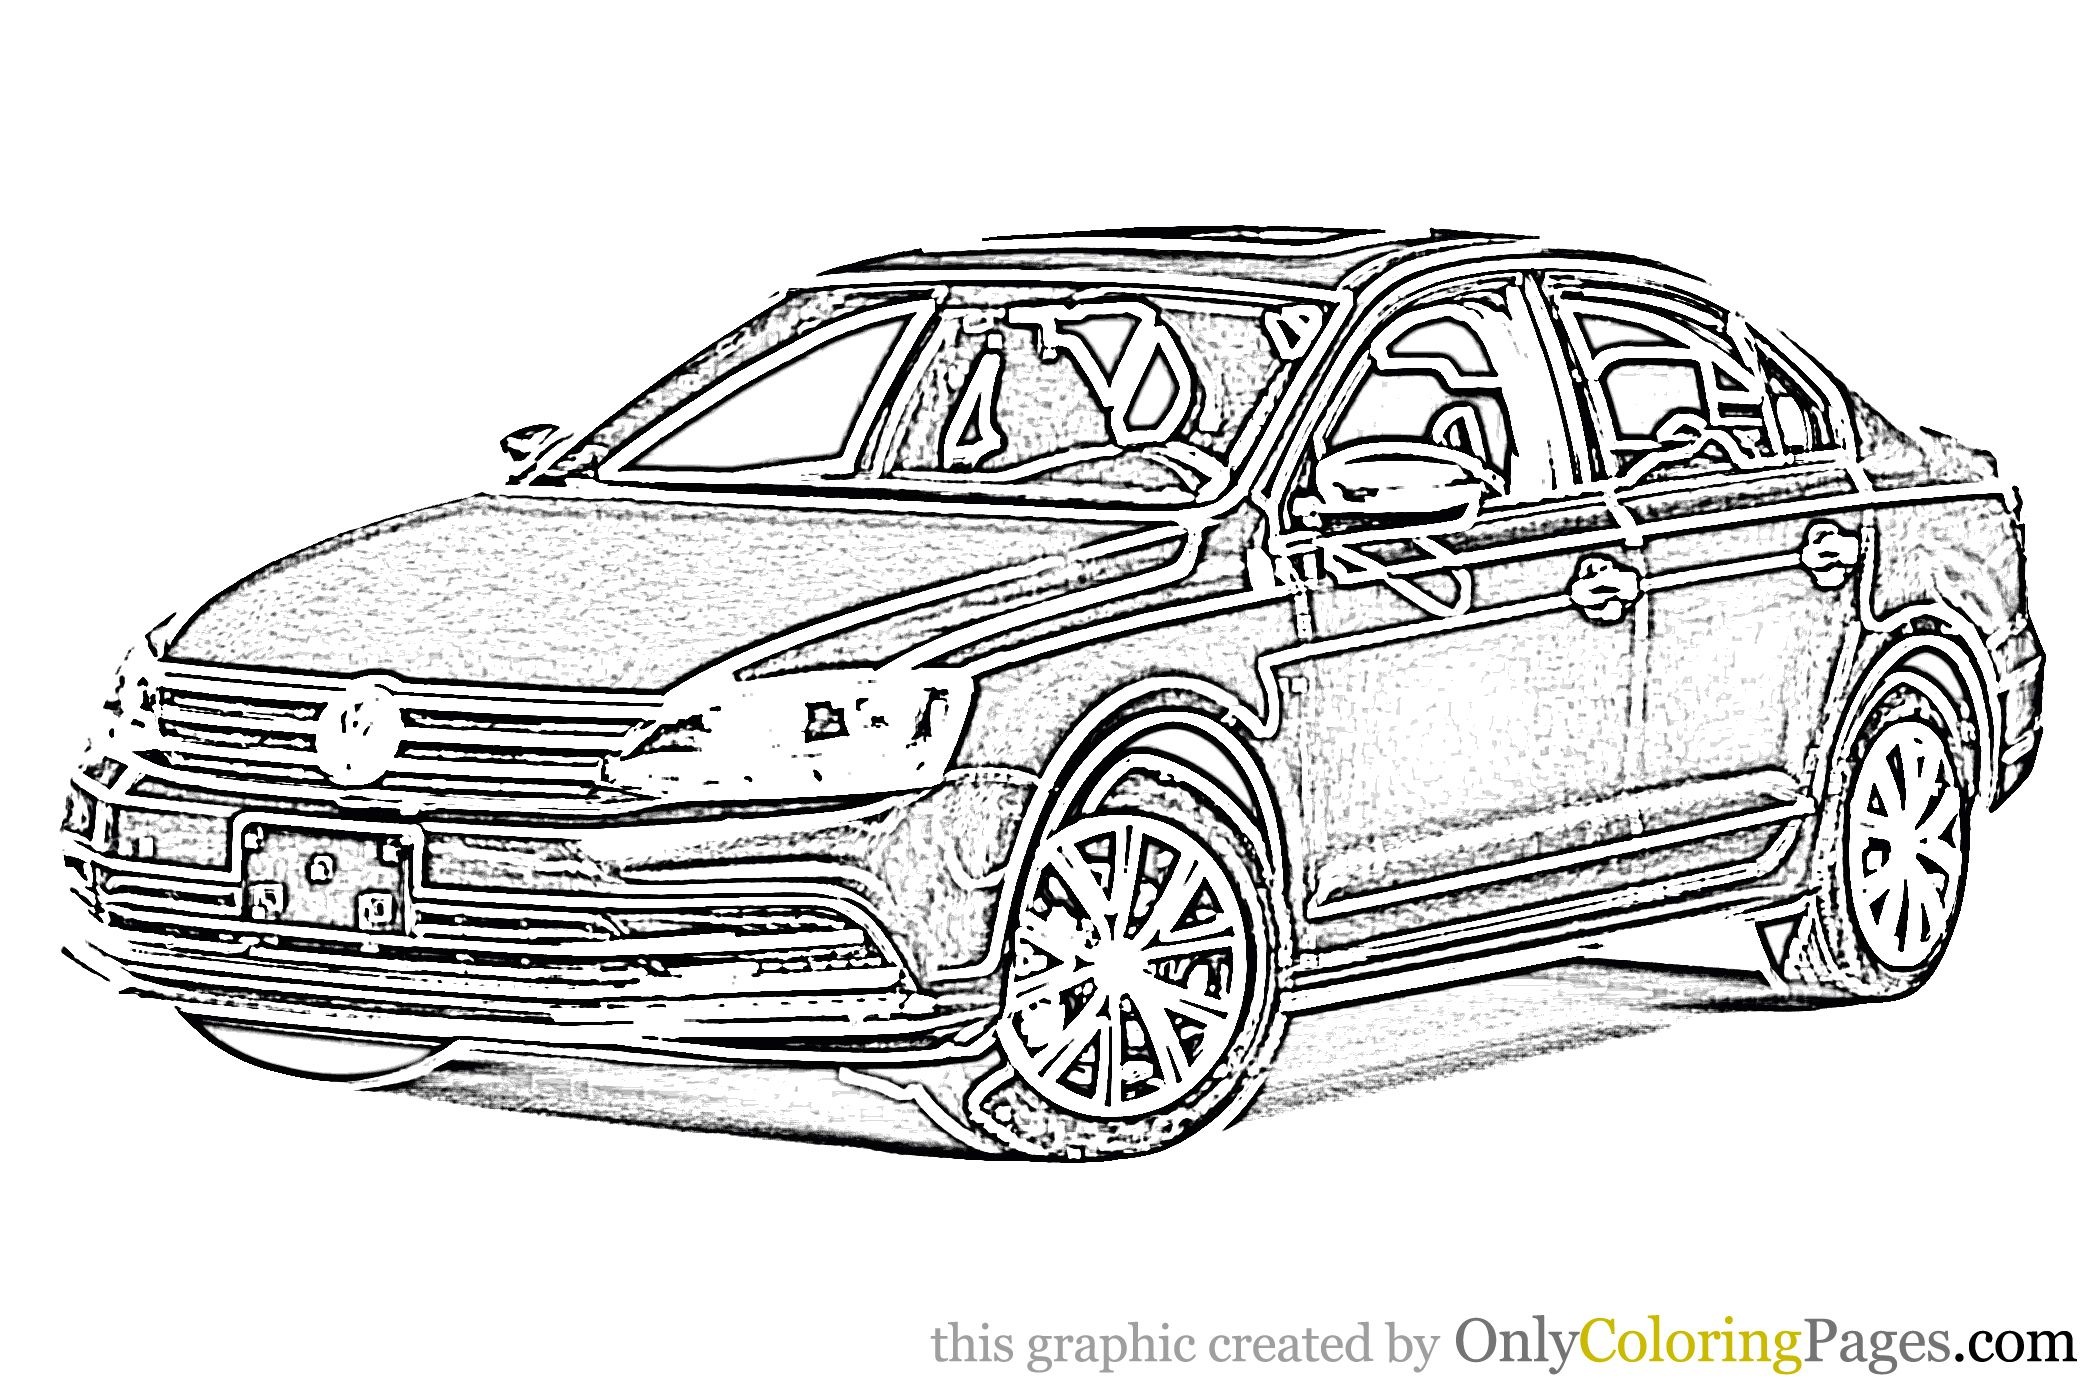 Jetta Car Coloring Page Coloringpages Coloringbook